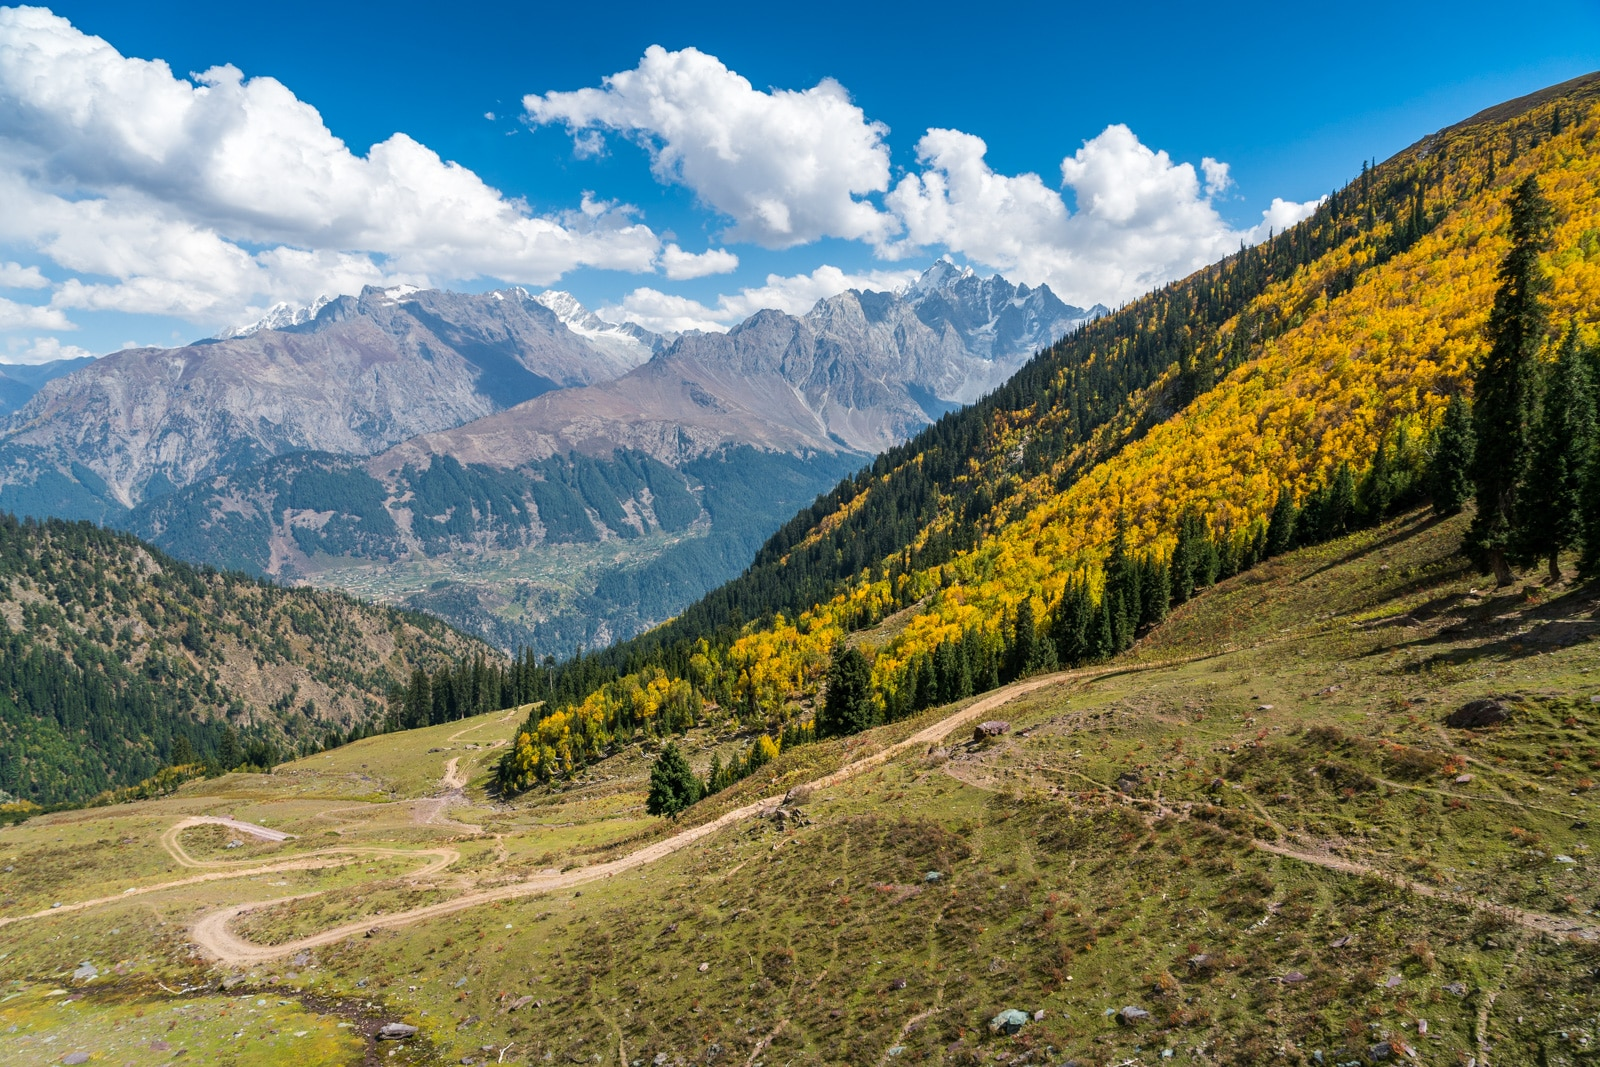 Day trekking in Kalam, Swat Valley, Pakistan - Fall colors in the mountains - Lost With Purpose travel blog